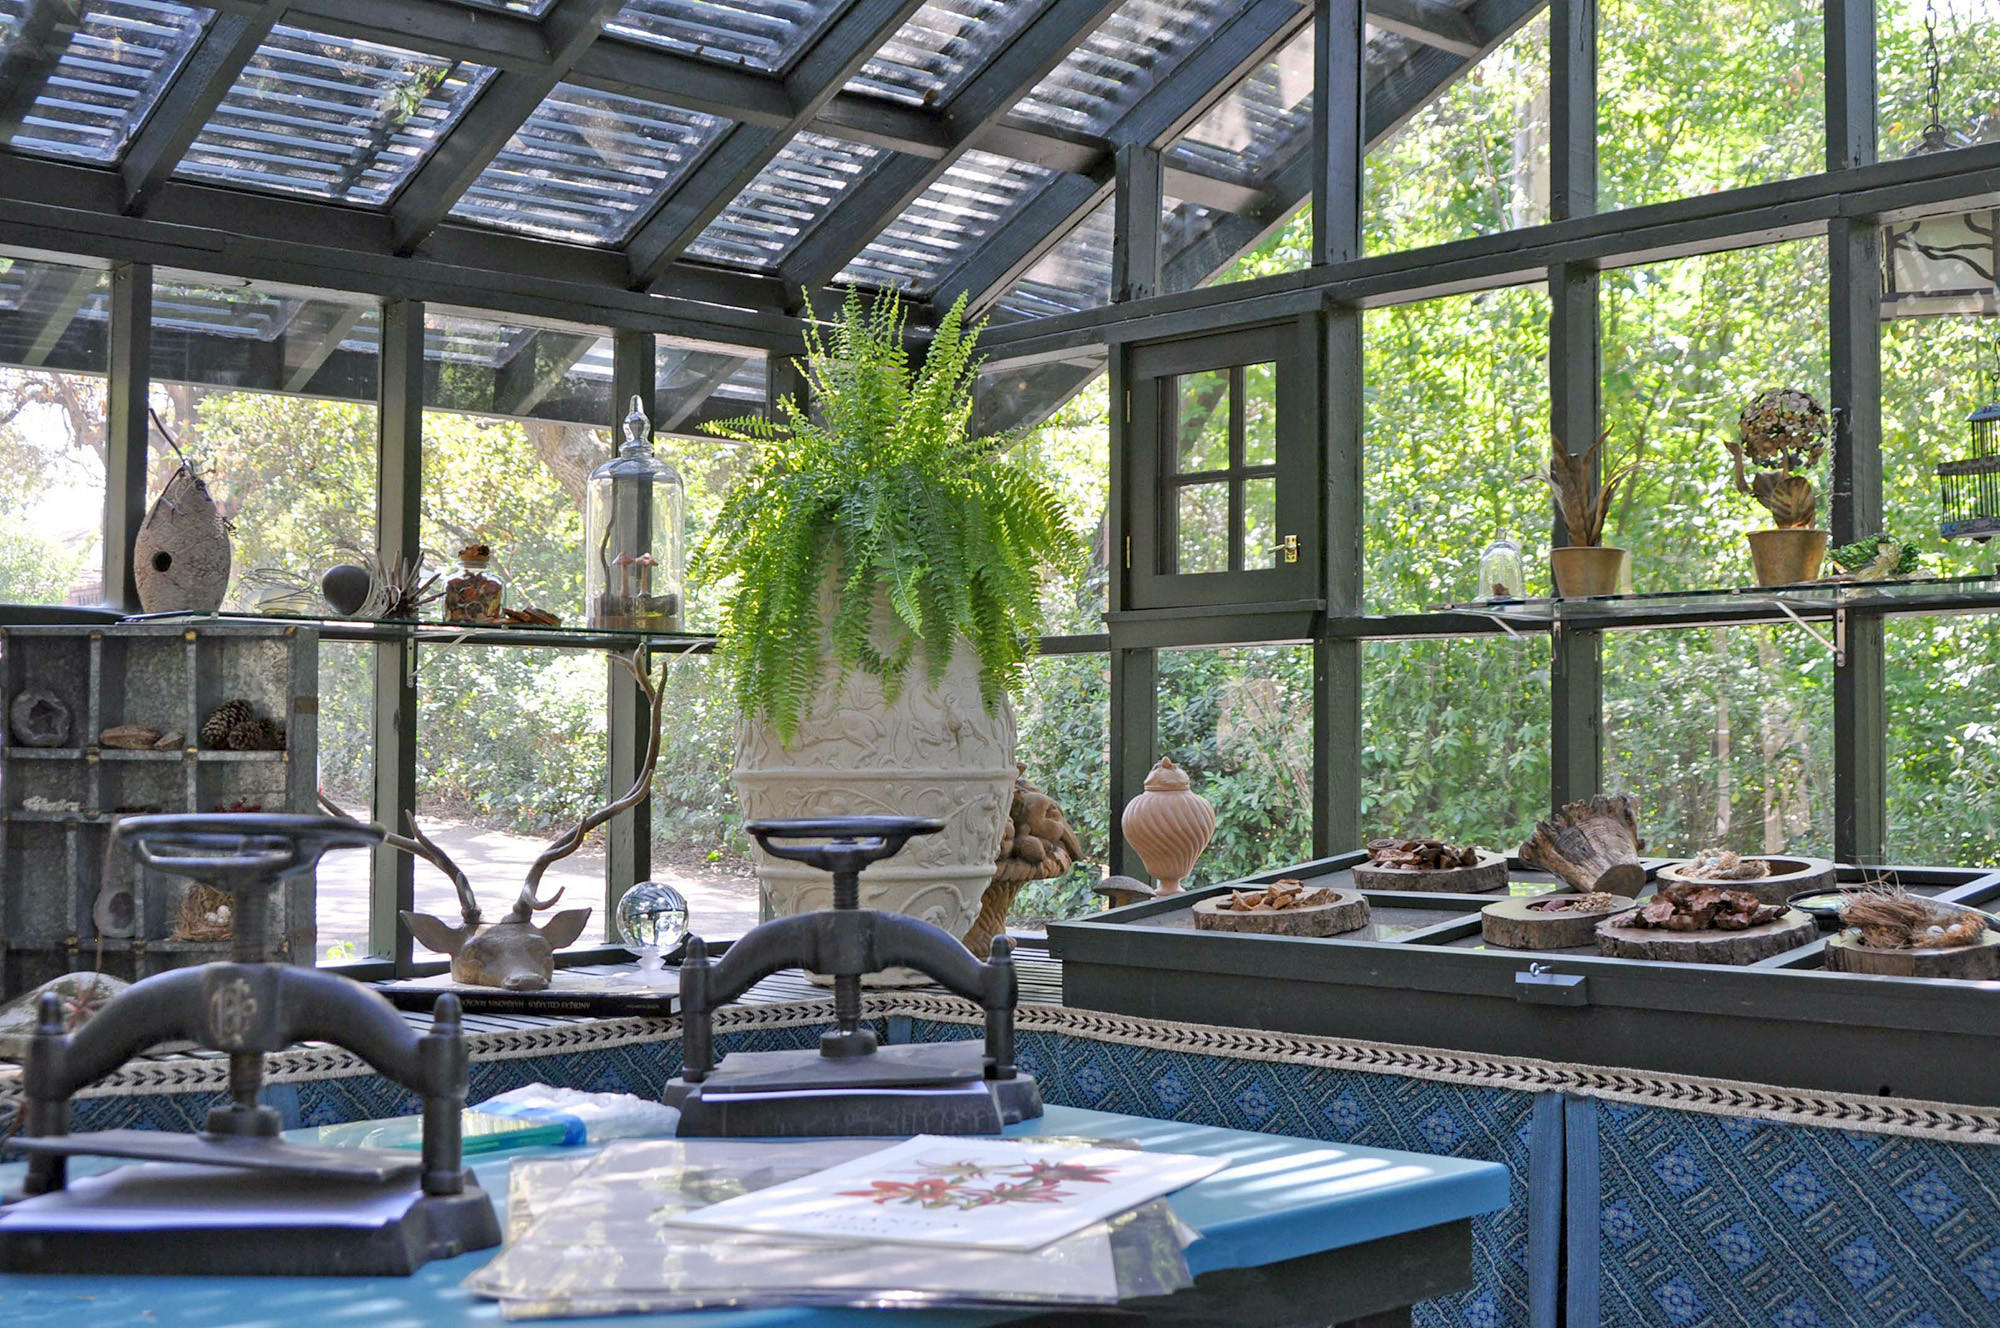 Delores Kroop of D.K. Designs let the wonders of nature to be the stars in her design of The Botanical Retreat.